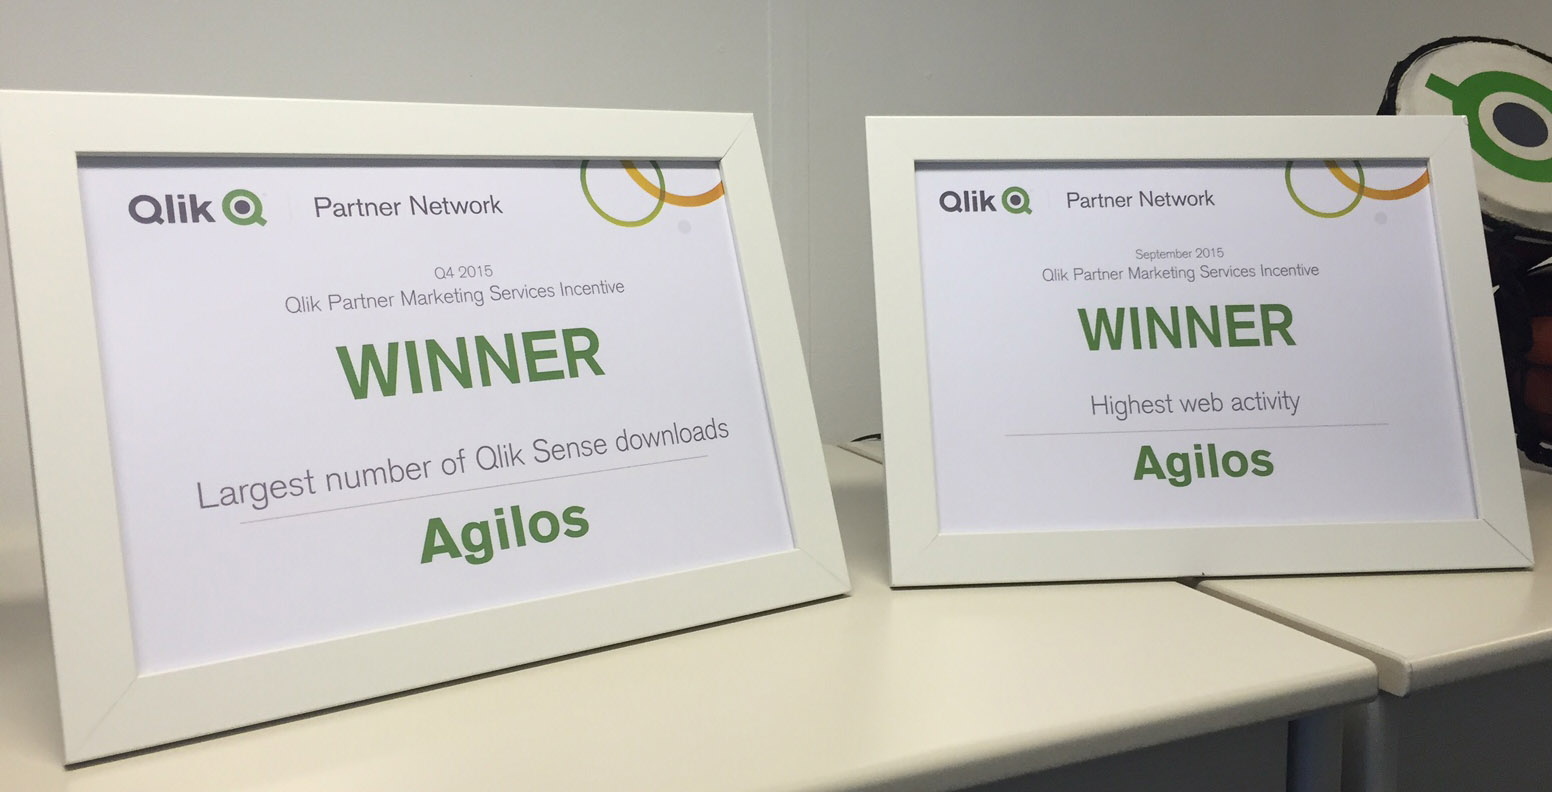 Qlik_Awards_Agilos.jpg